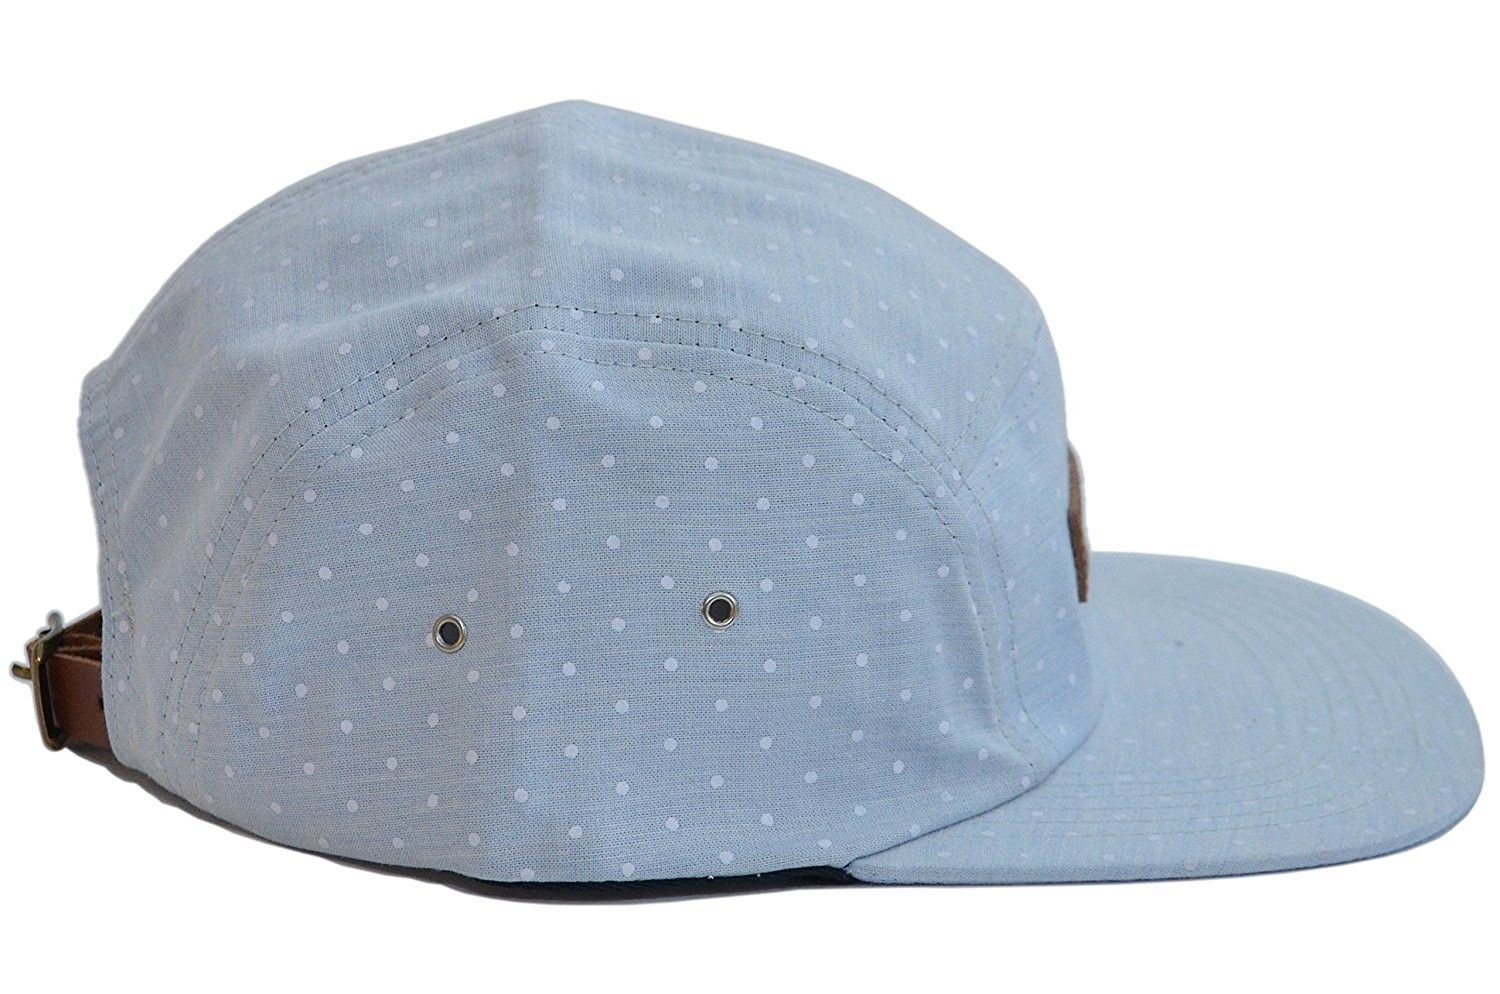 5 Panel Hat Collection With Genuine Leather Strap Multiple Colors Baby Blue Polka Dot Ci12i0tlce7 Panel Hat Leather Straps Blue Polka Dots